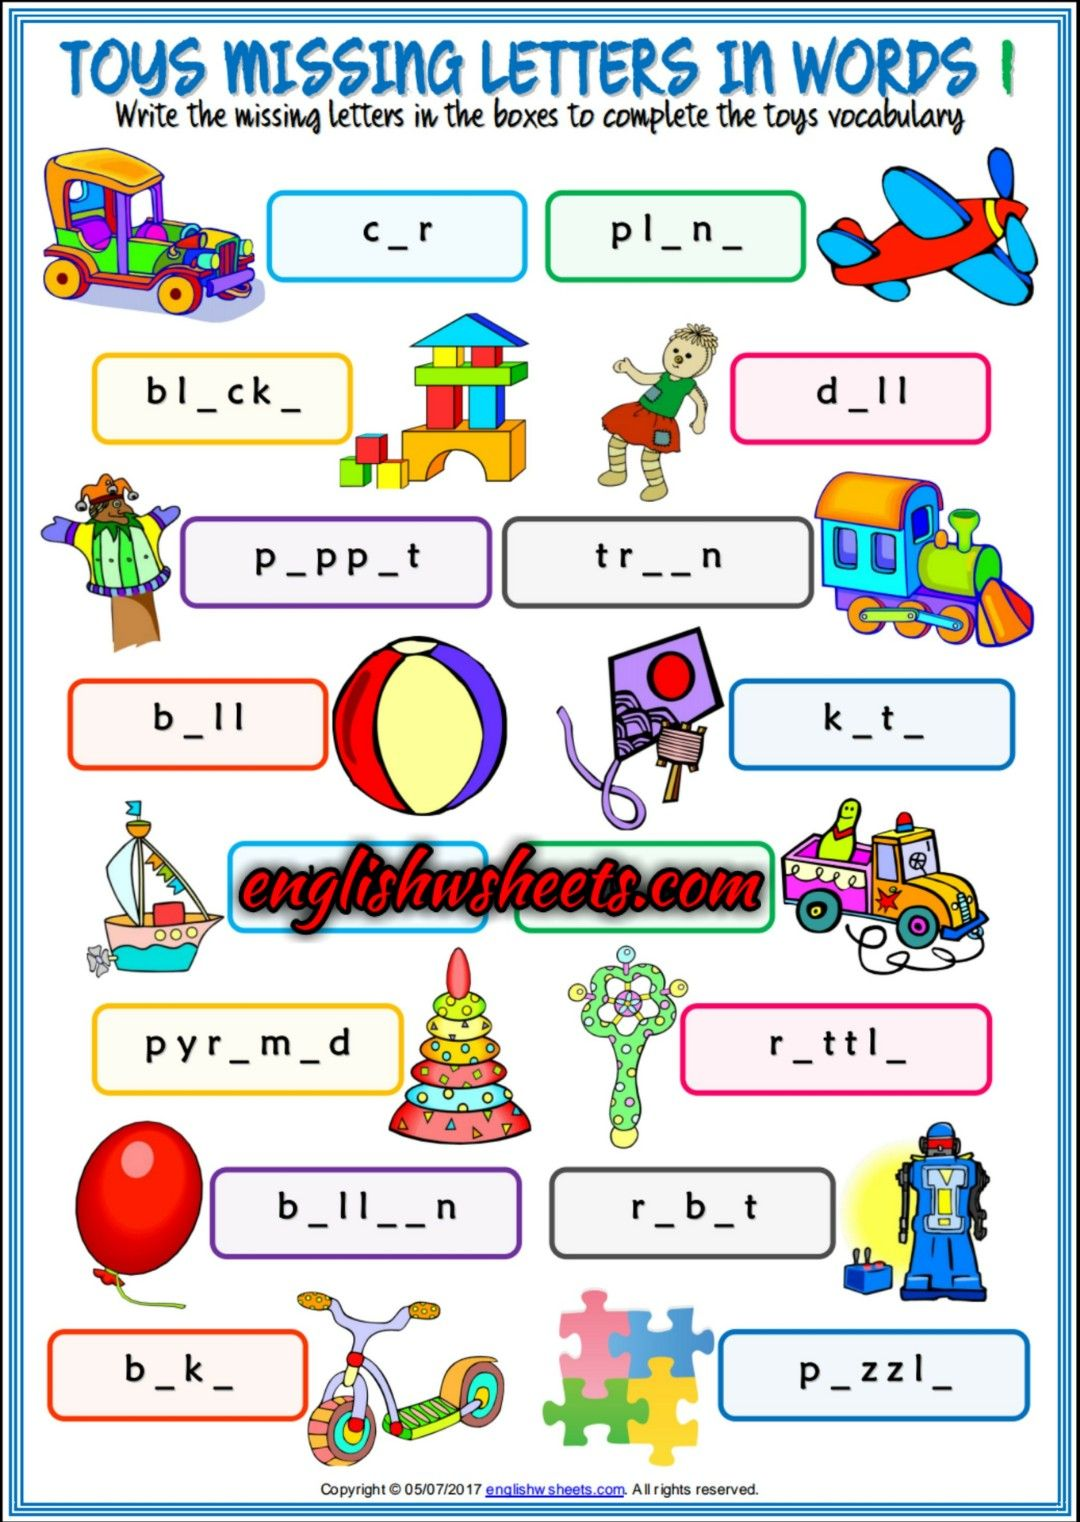 Toys Esl Printable Missing Letters In Words Worksheets For Kids Toys Esl Printables M